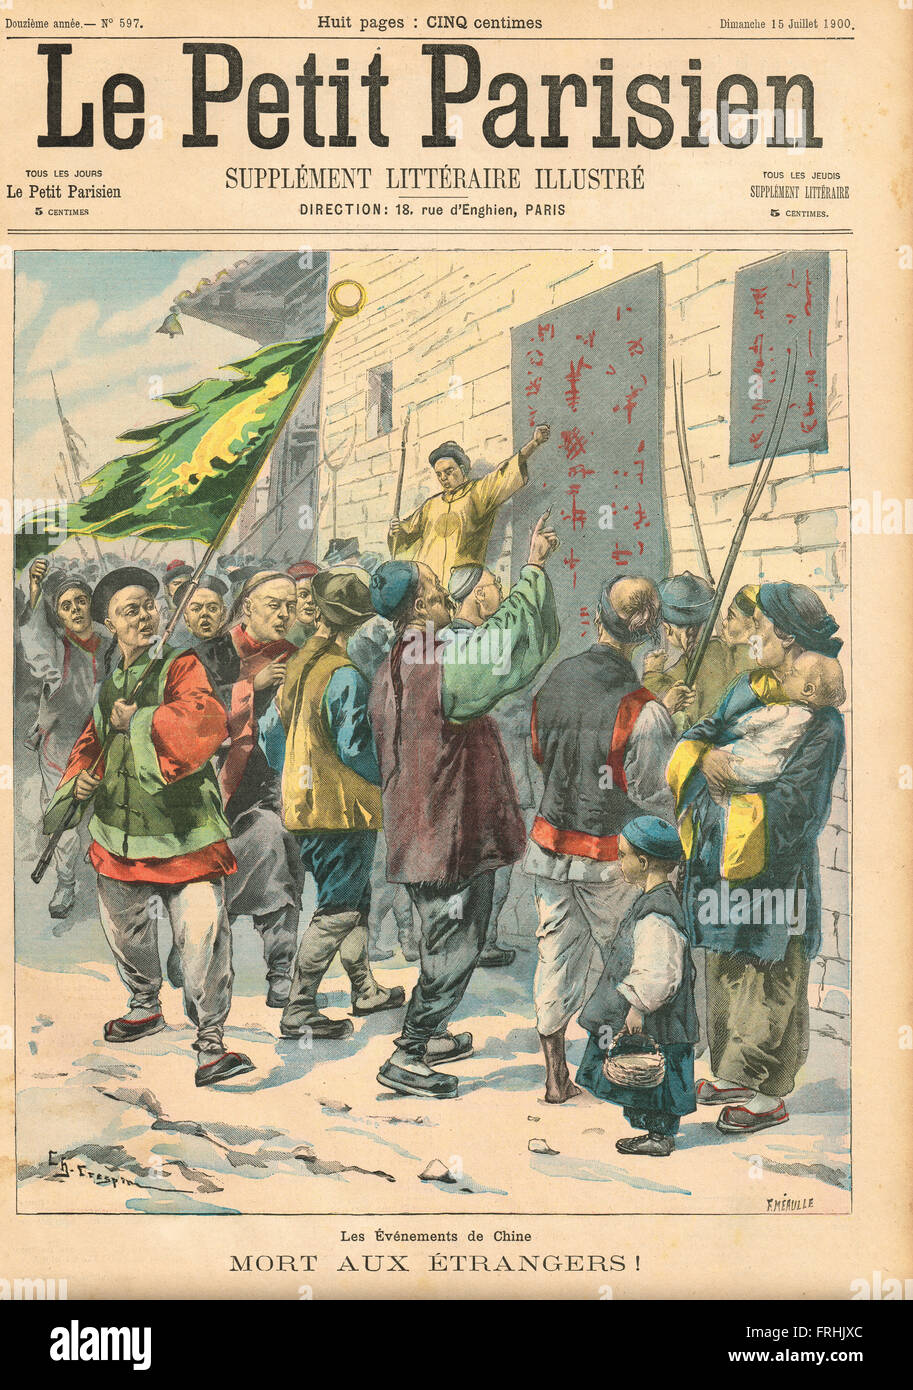 Death to Foreigners! Boxer Rebellion China 1900 - Stock Image